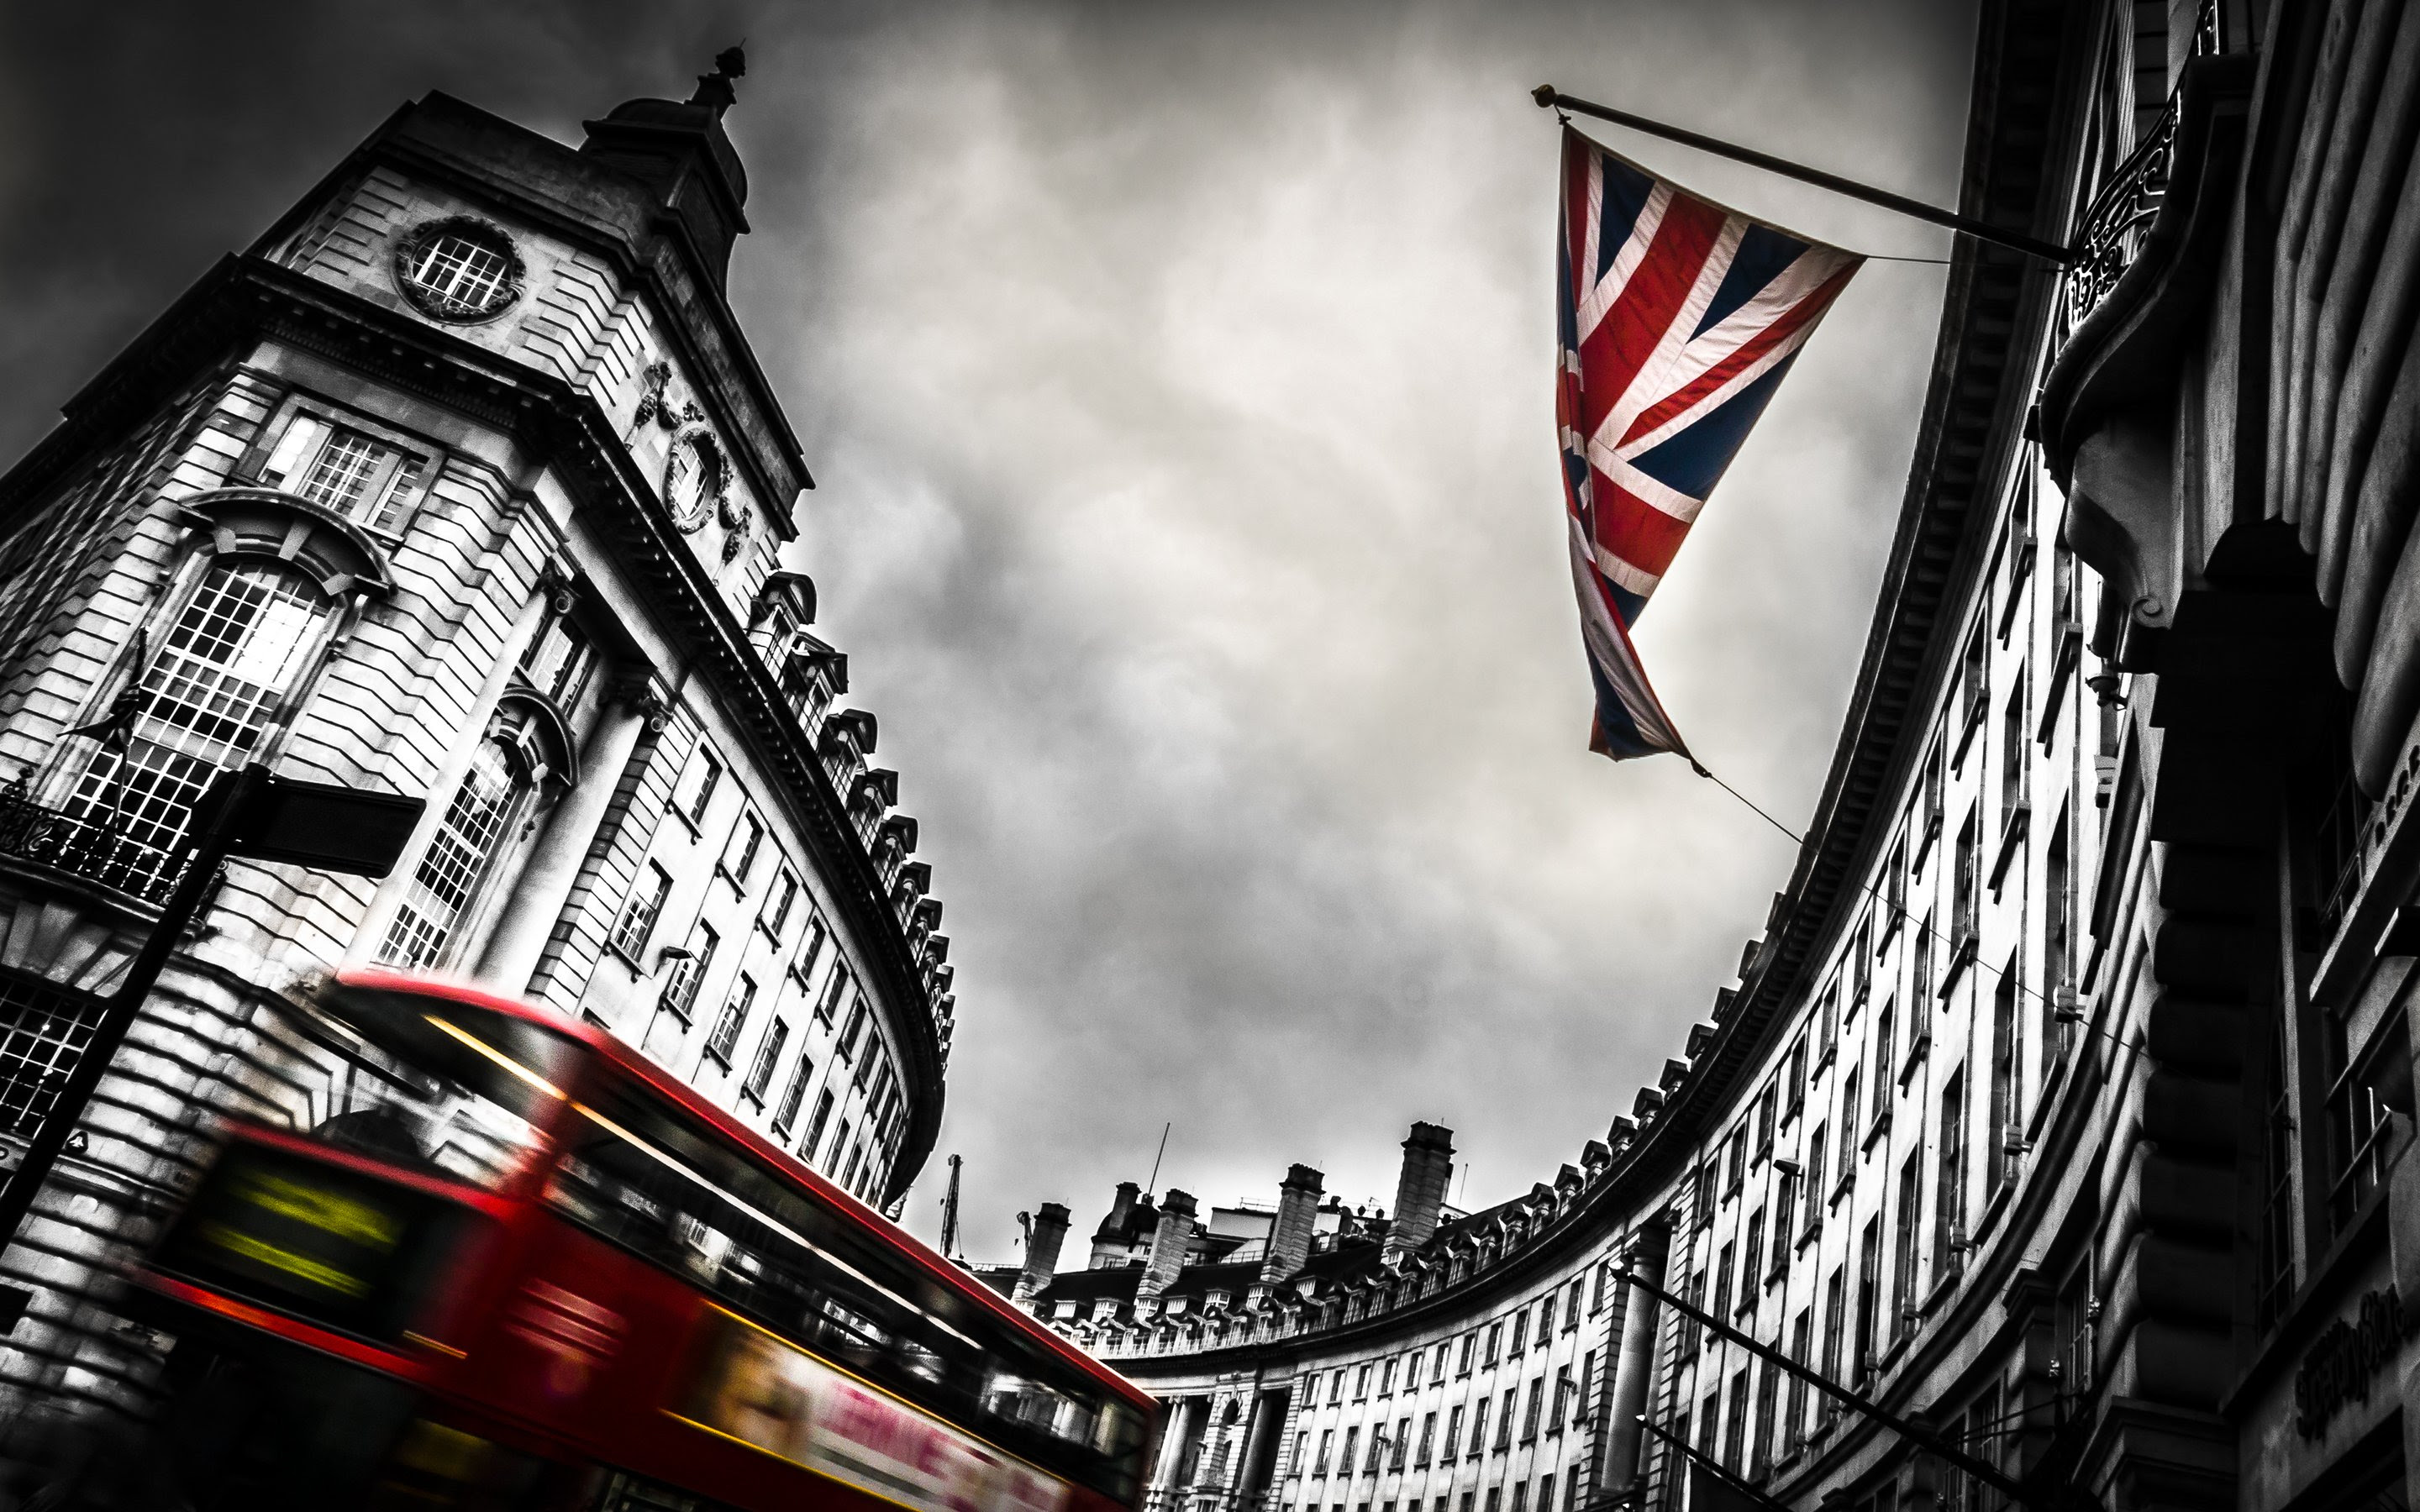 London Wallpapers HD A20  HD Desktop Wallpapers  4k HD